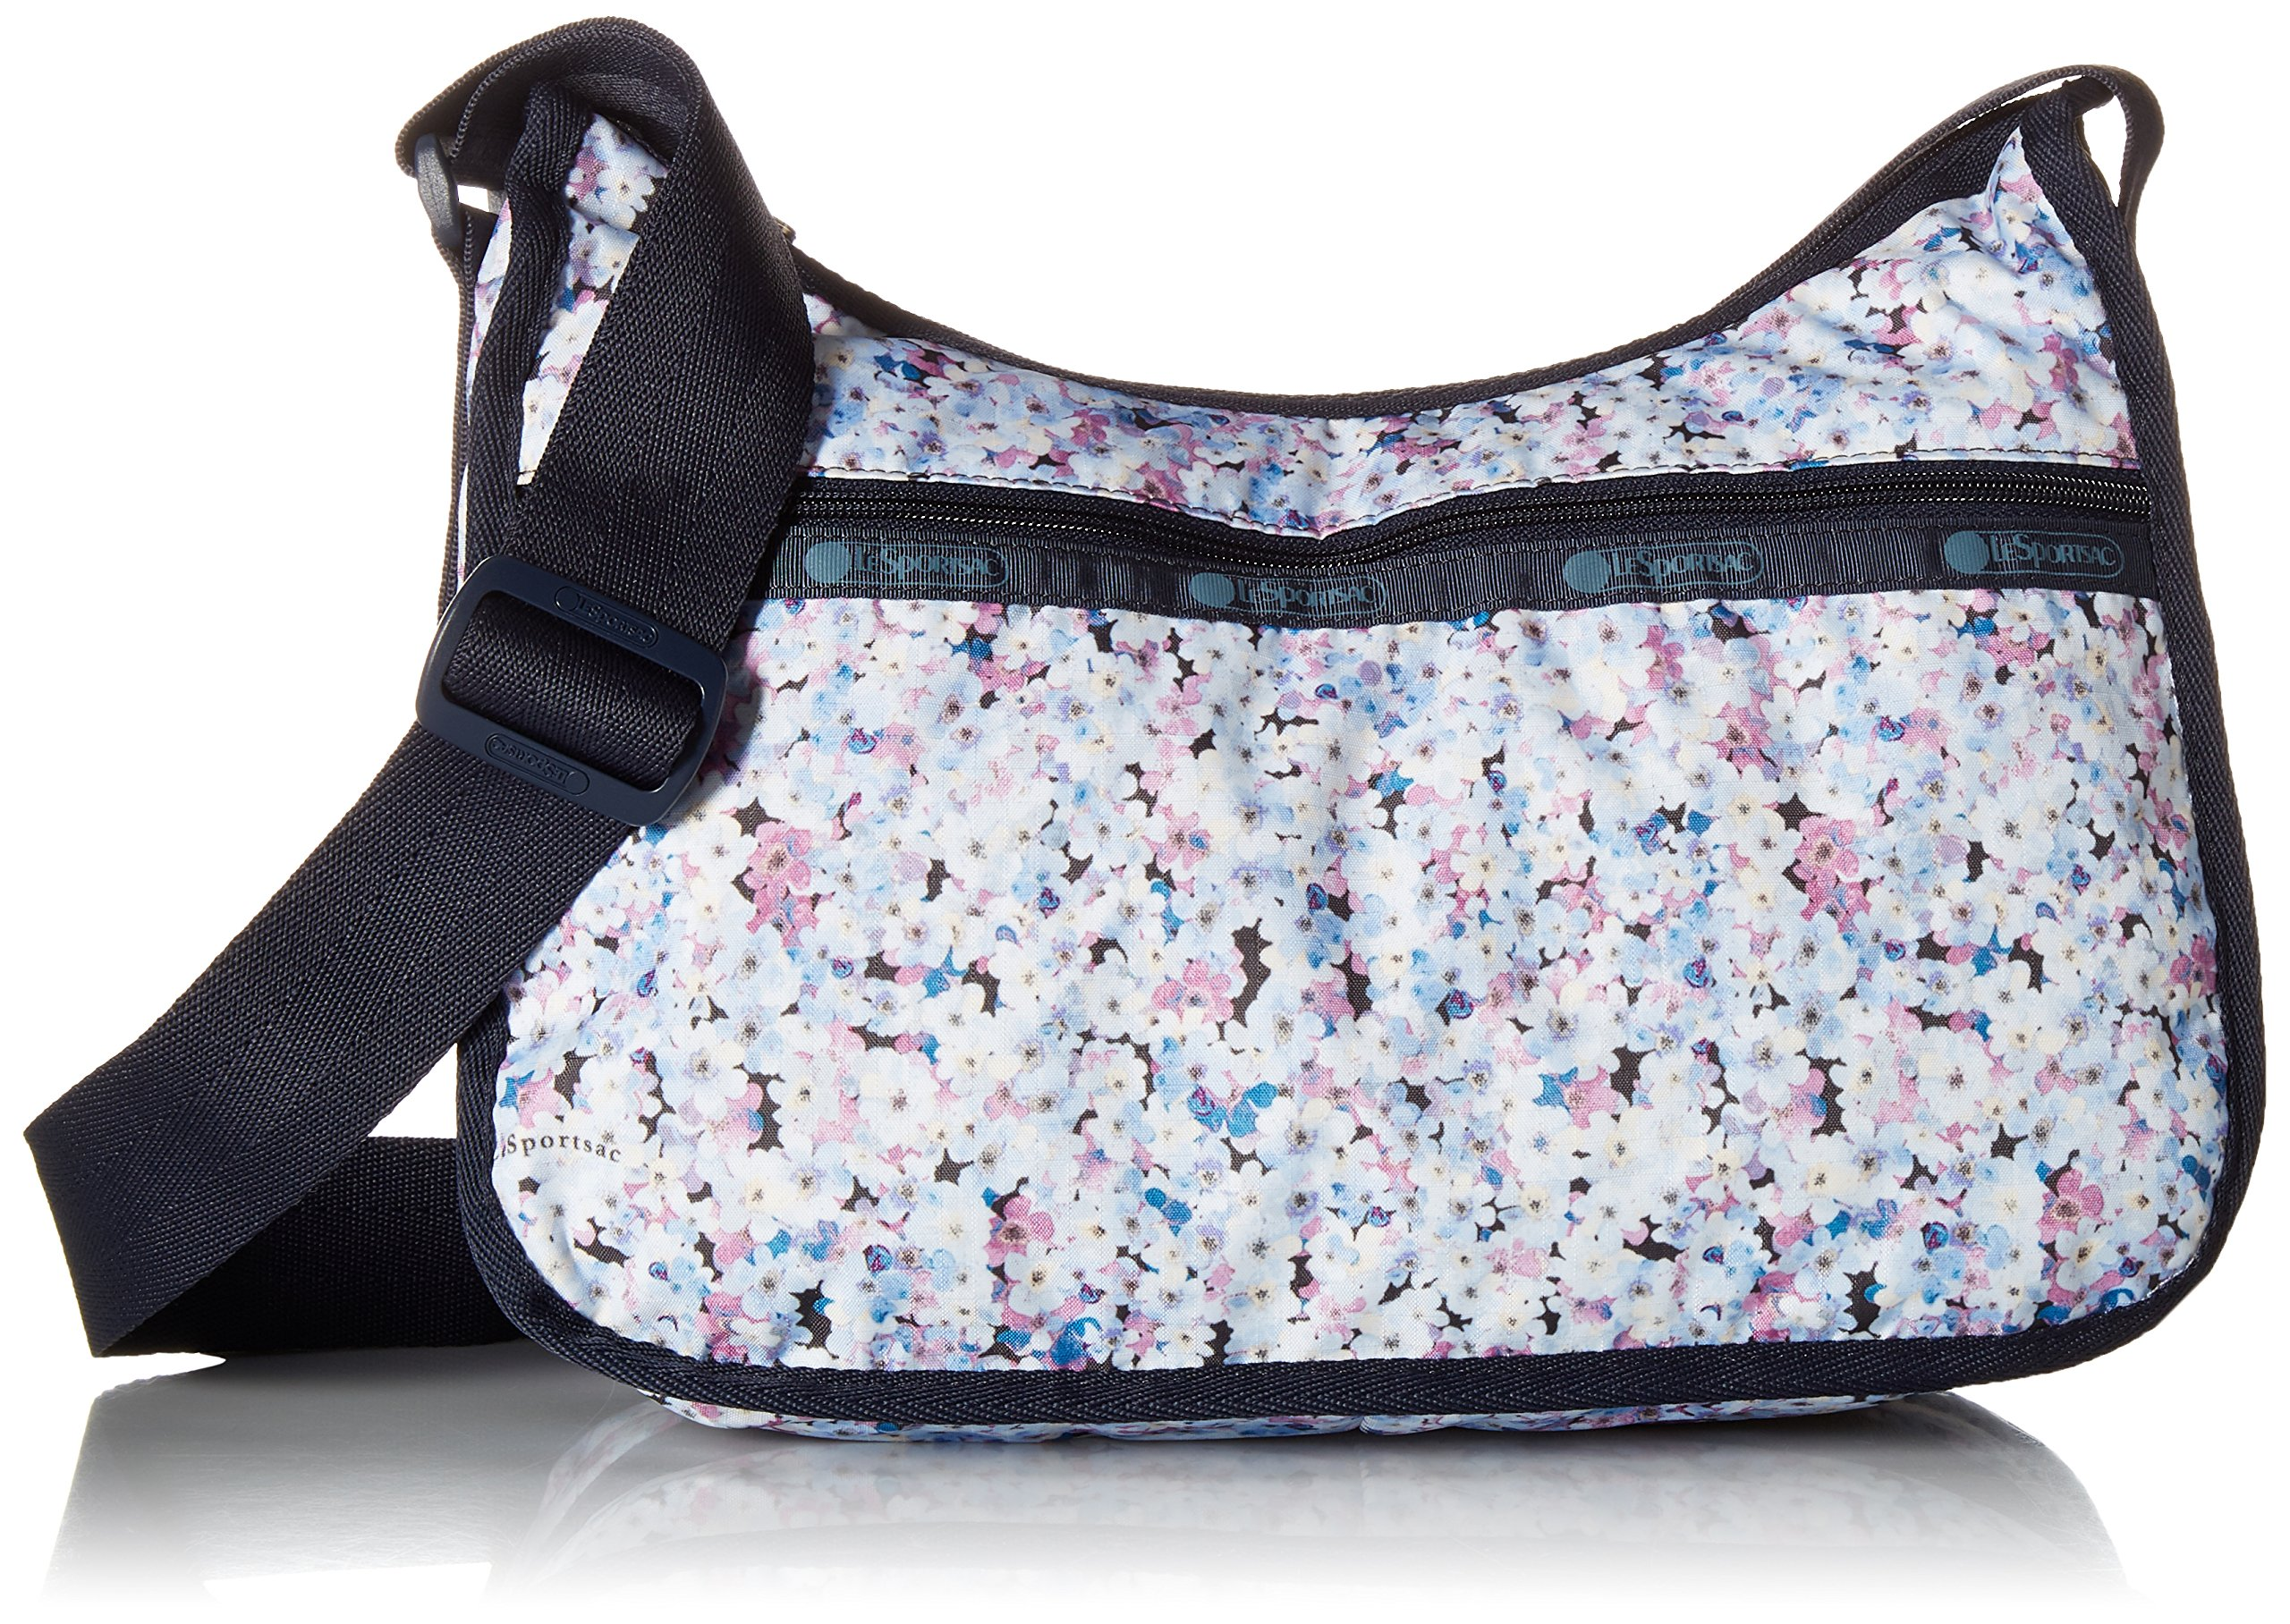 LeSportsac Classic Hobo Handbag, Moon Shadow deep